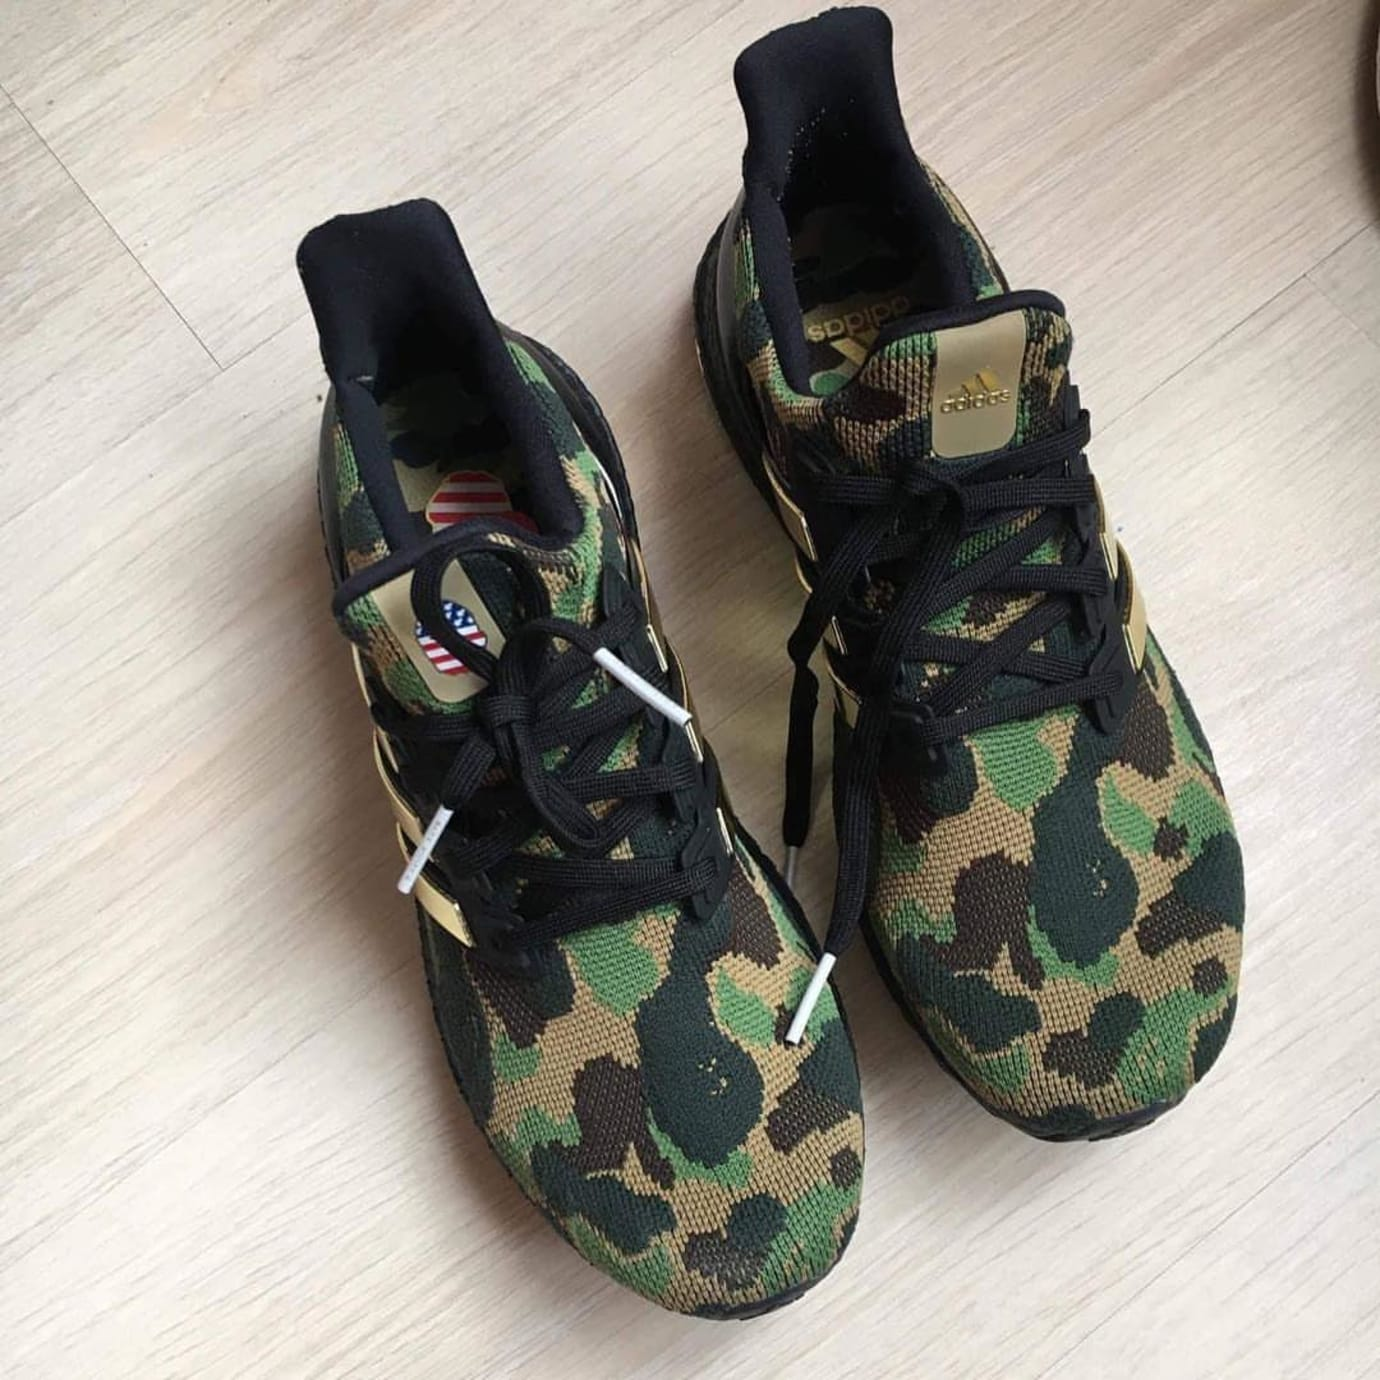 bape-adidas-ultra-boost-green-collab-first-look